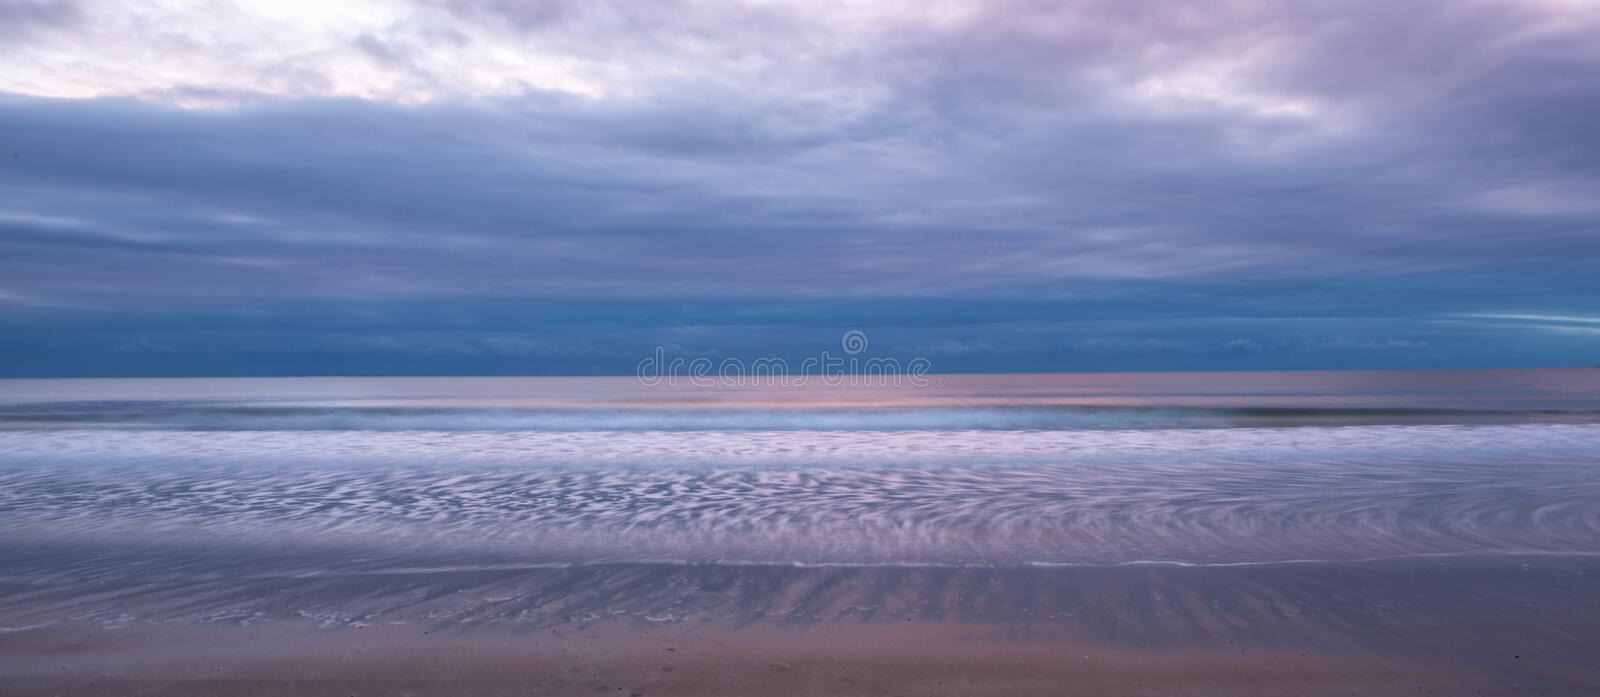 Abstract Background of Classic Blue and Turquoise Waves royalty free stock images